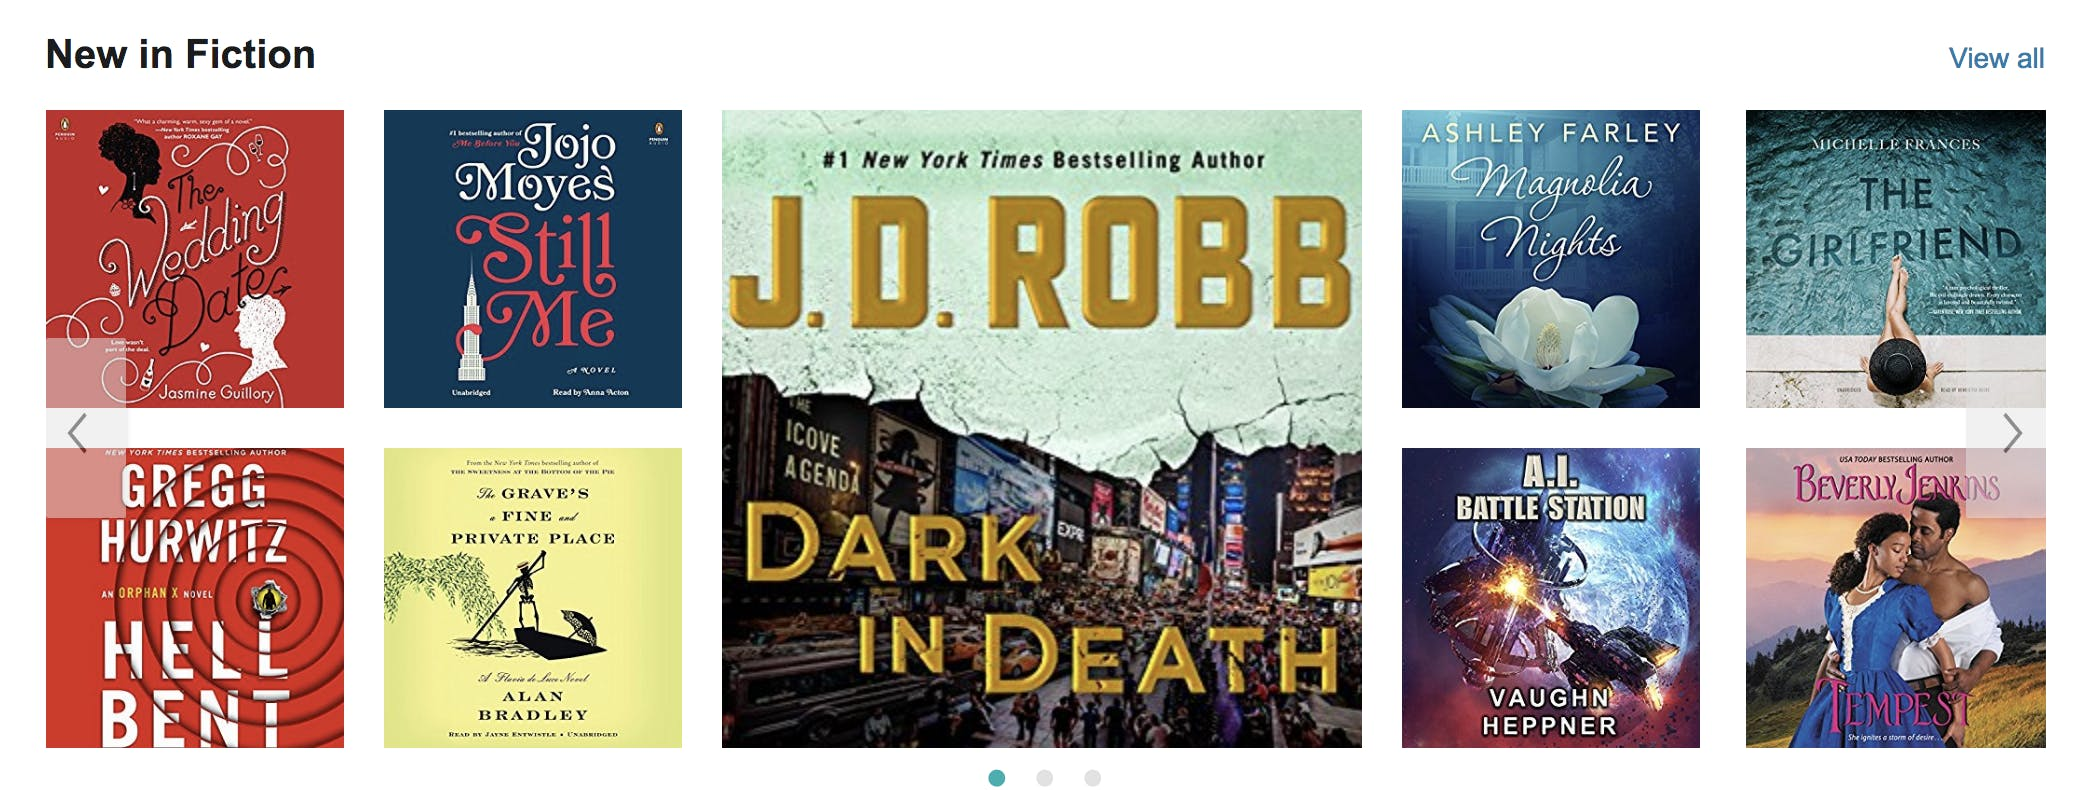 is audible worth it - audible books